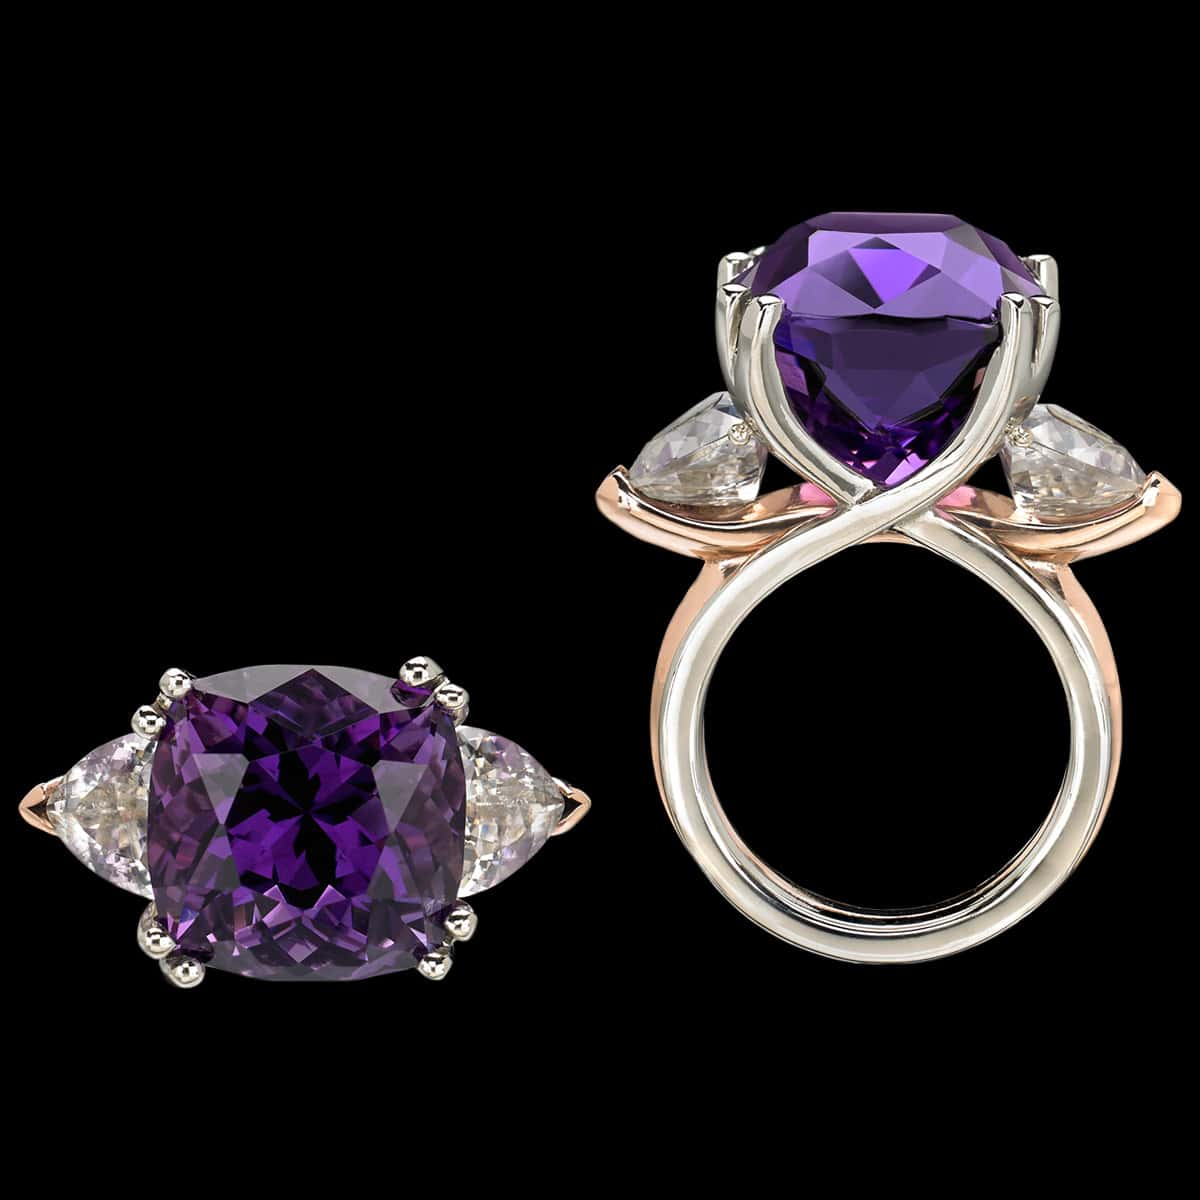 Allegre Amethyst Cocktail Ring both